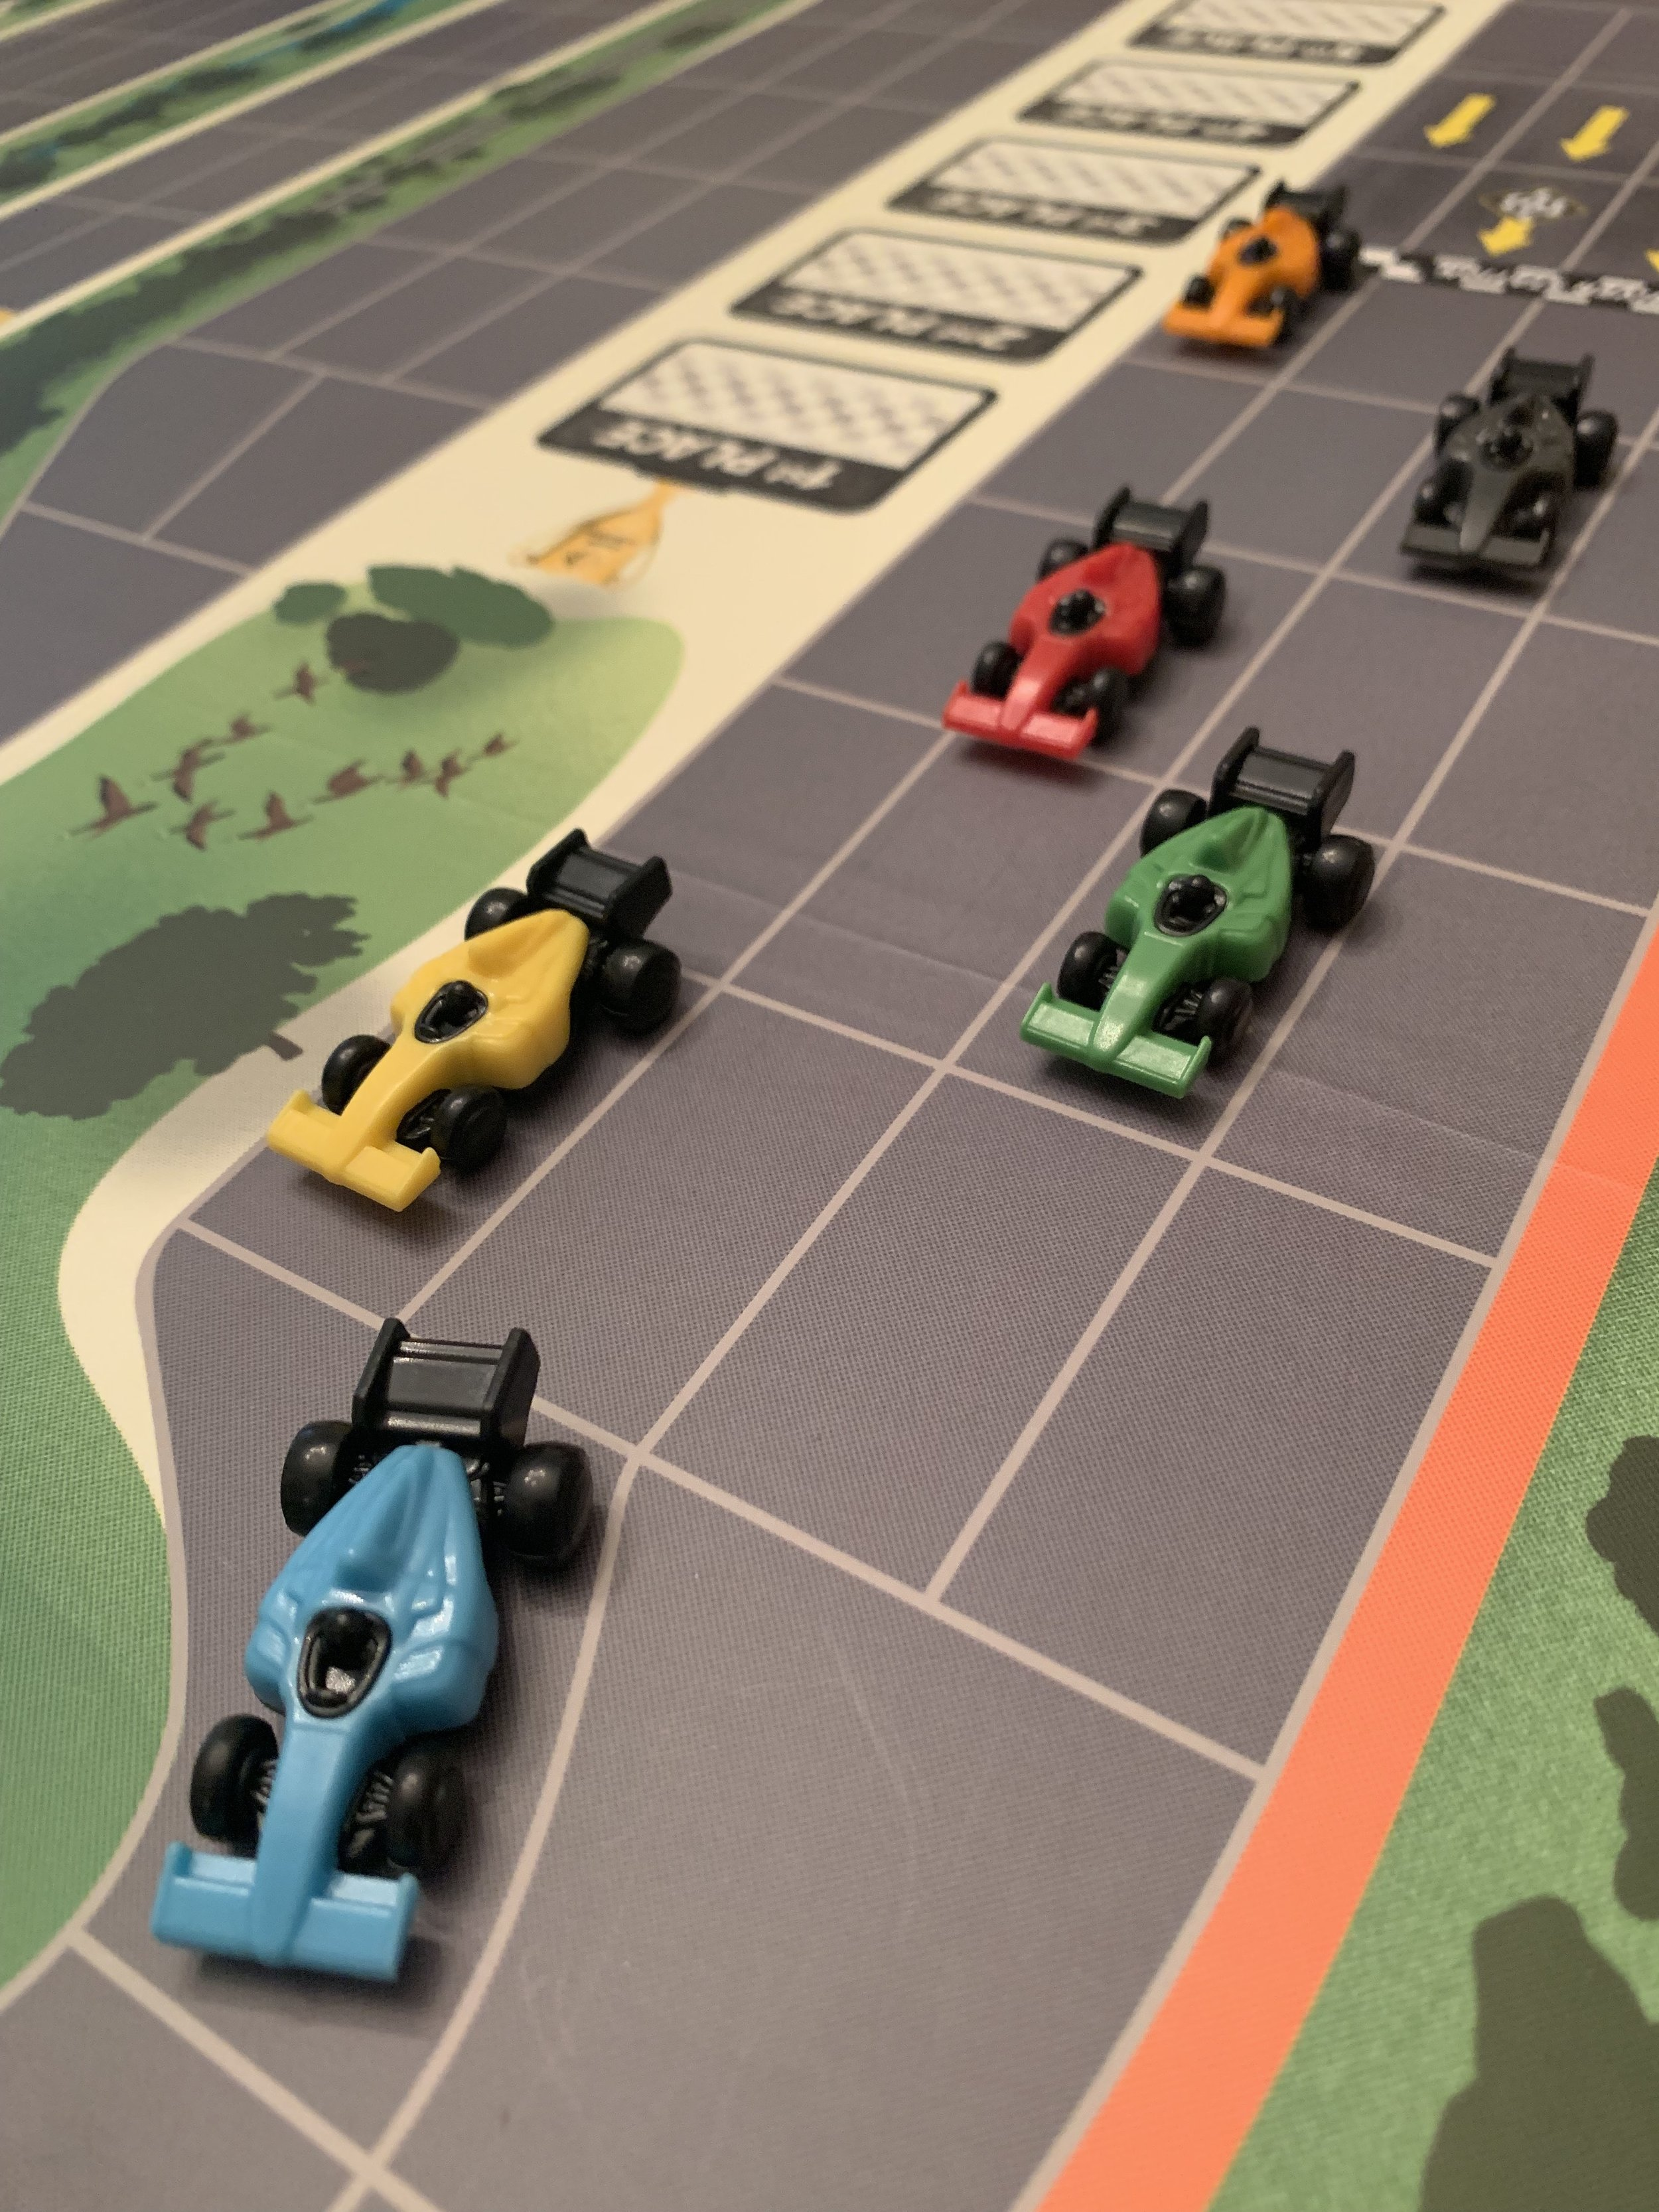 The race cars are very detailed and fun to zoom around the board.